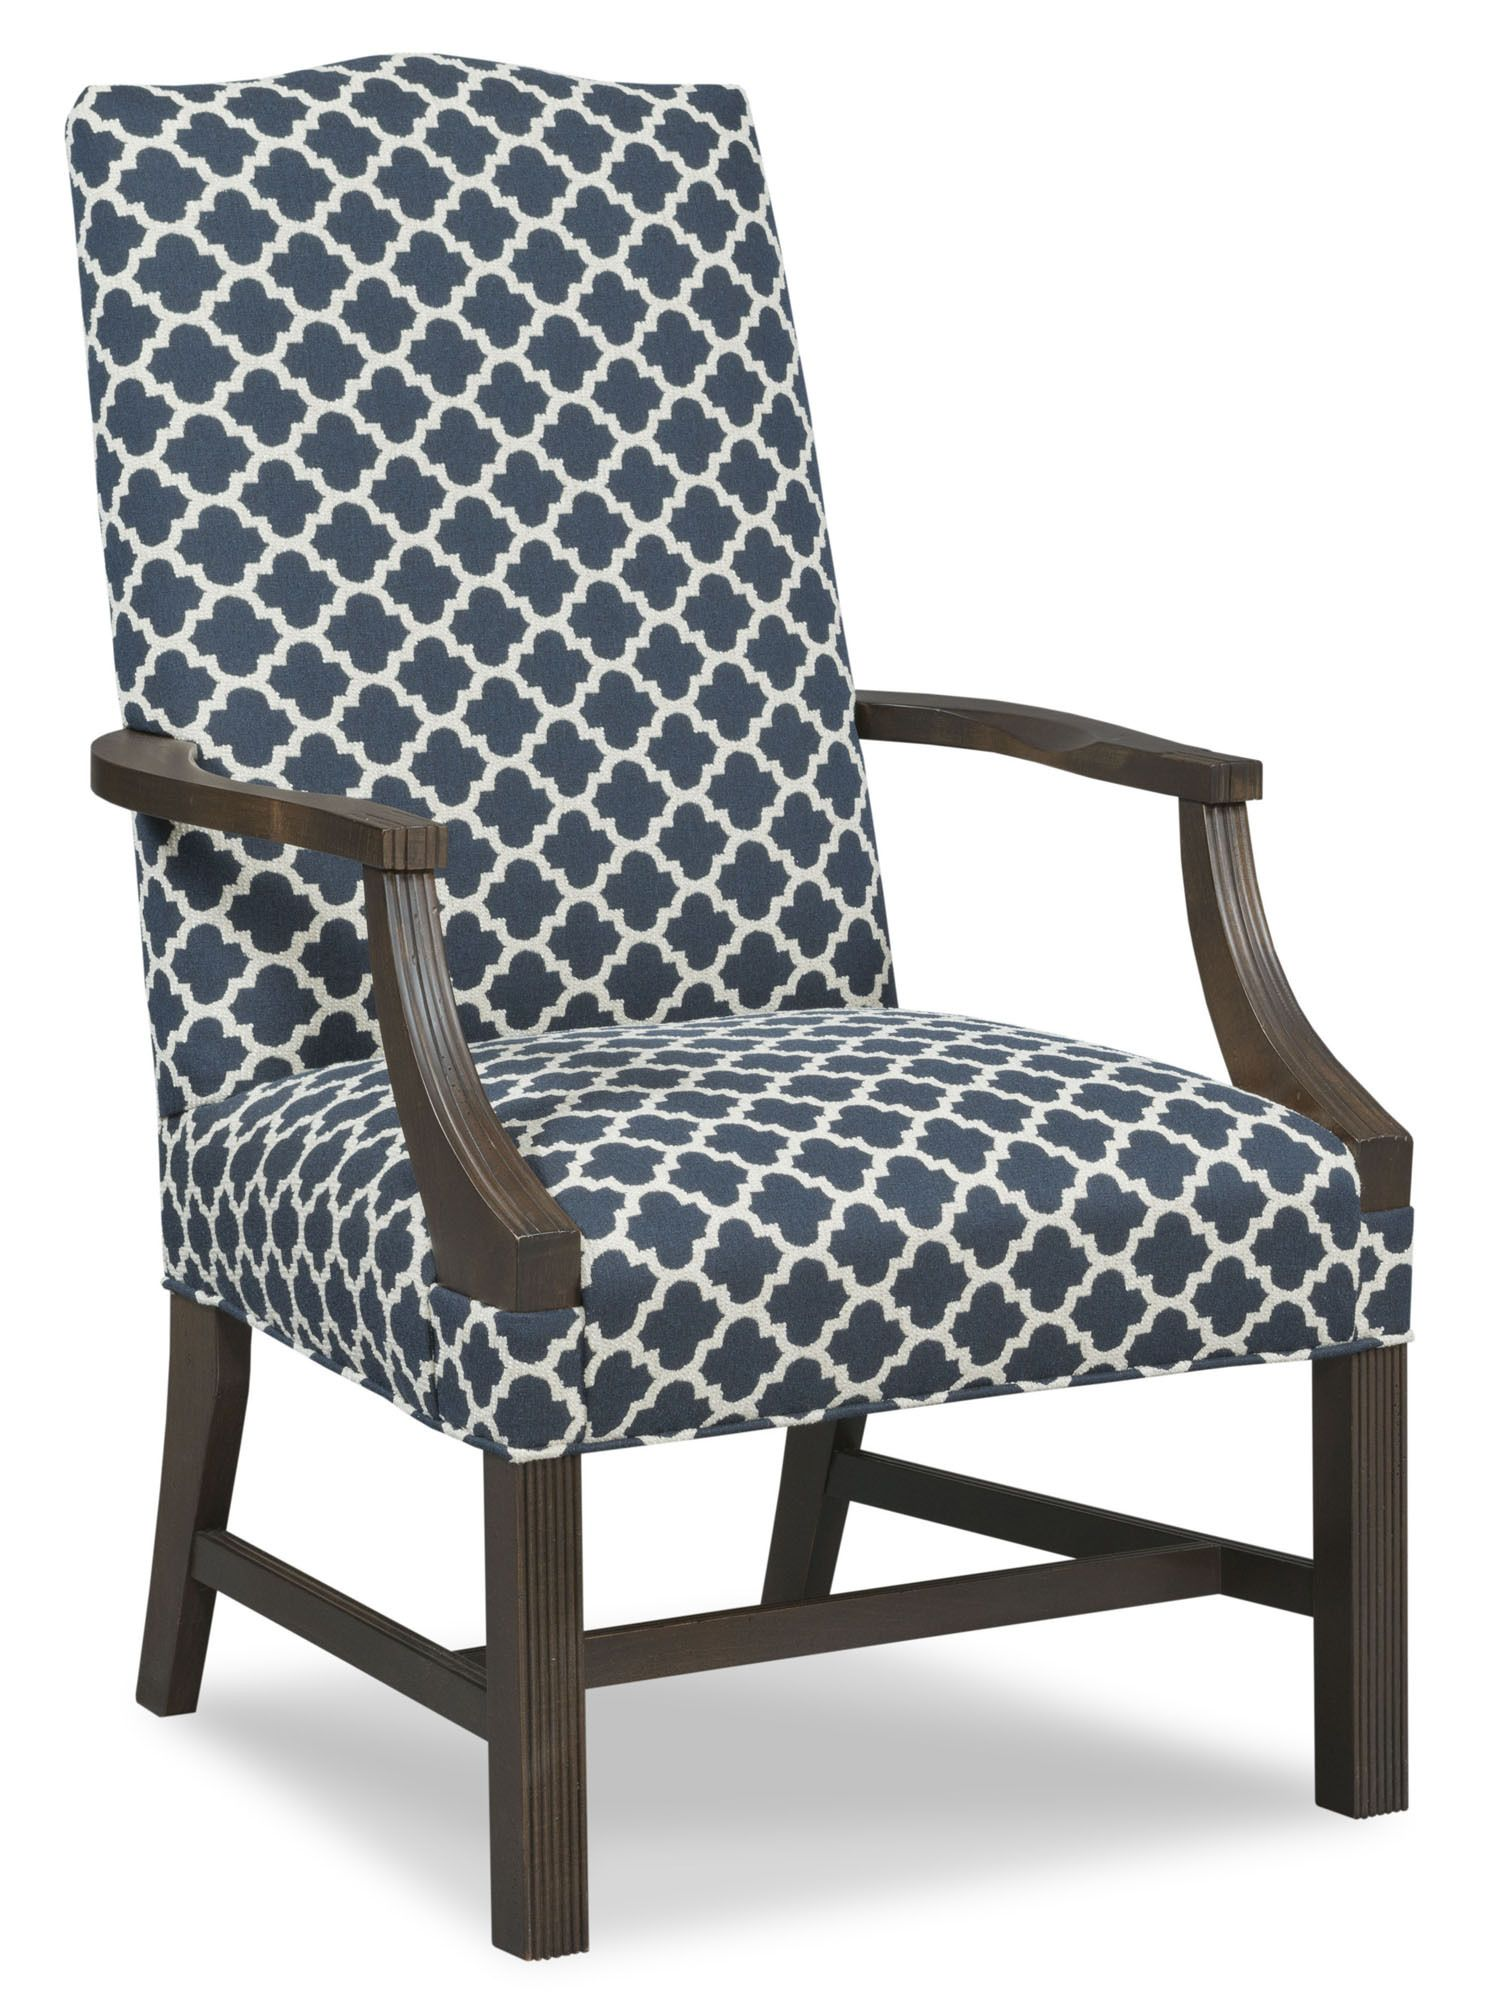 Occasional Chair | Fairfield Chair Company | Home Gallery Stores